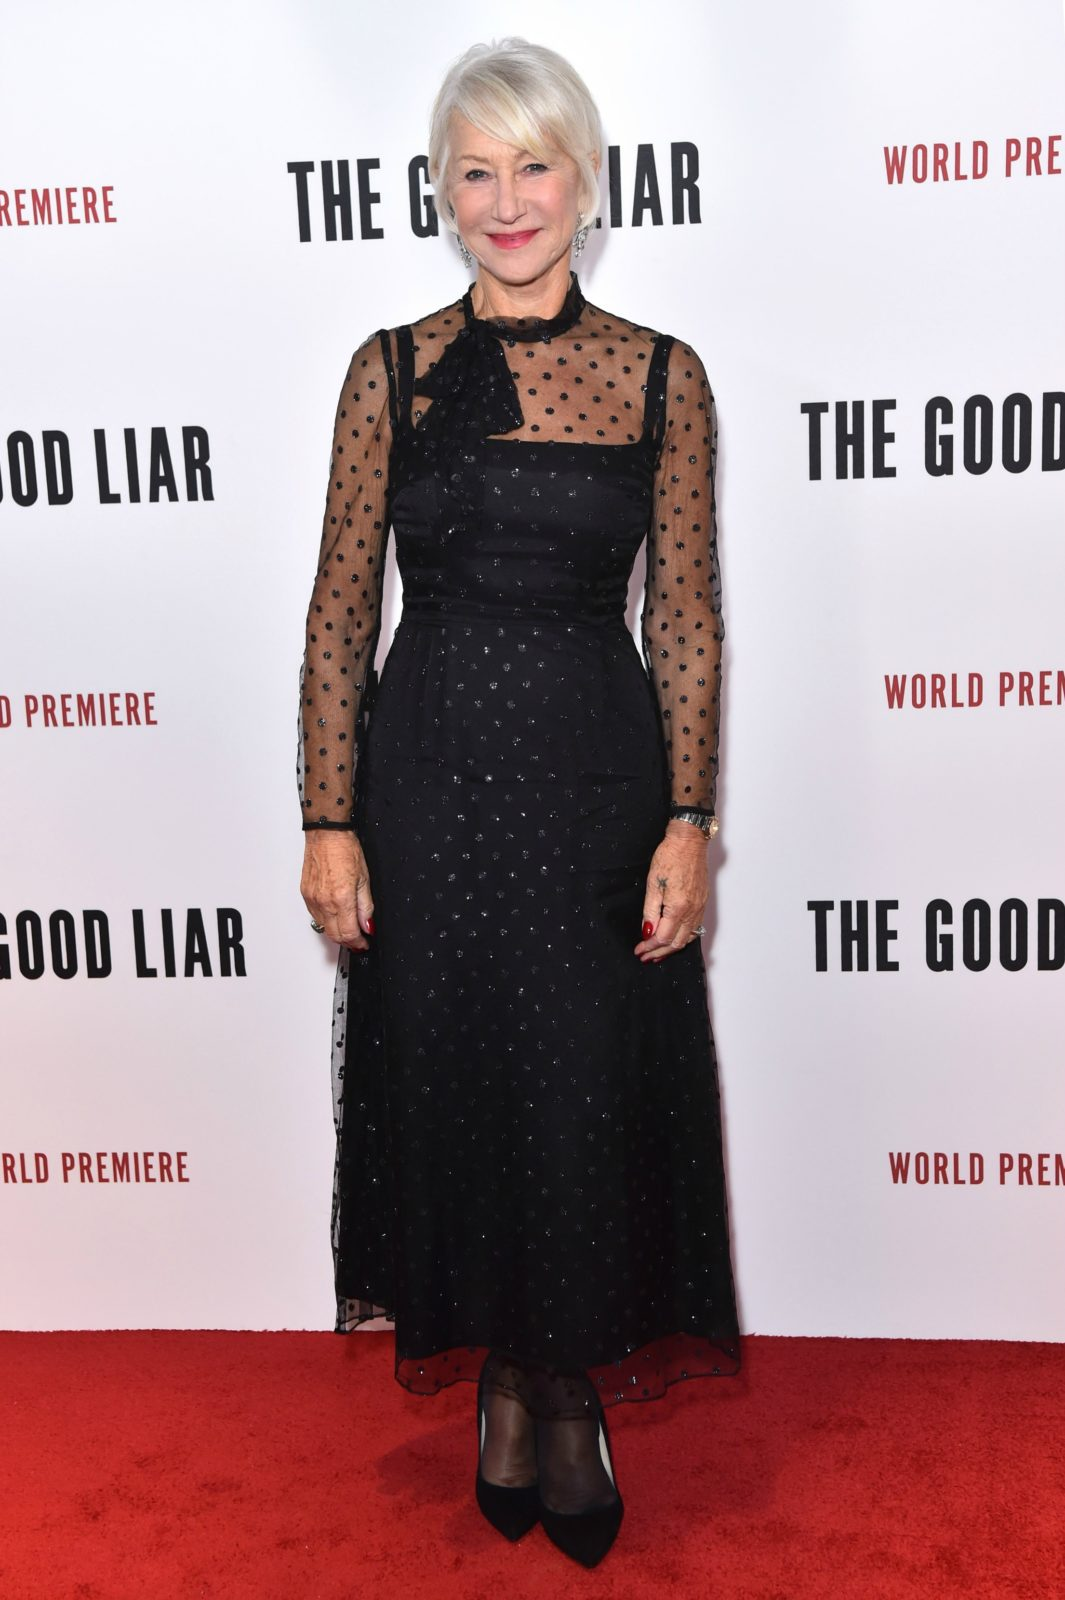 Helen Mirren stole the limelight in a sheer-panelled black dress for The Good Liar premiere. Source: Getty.